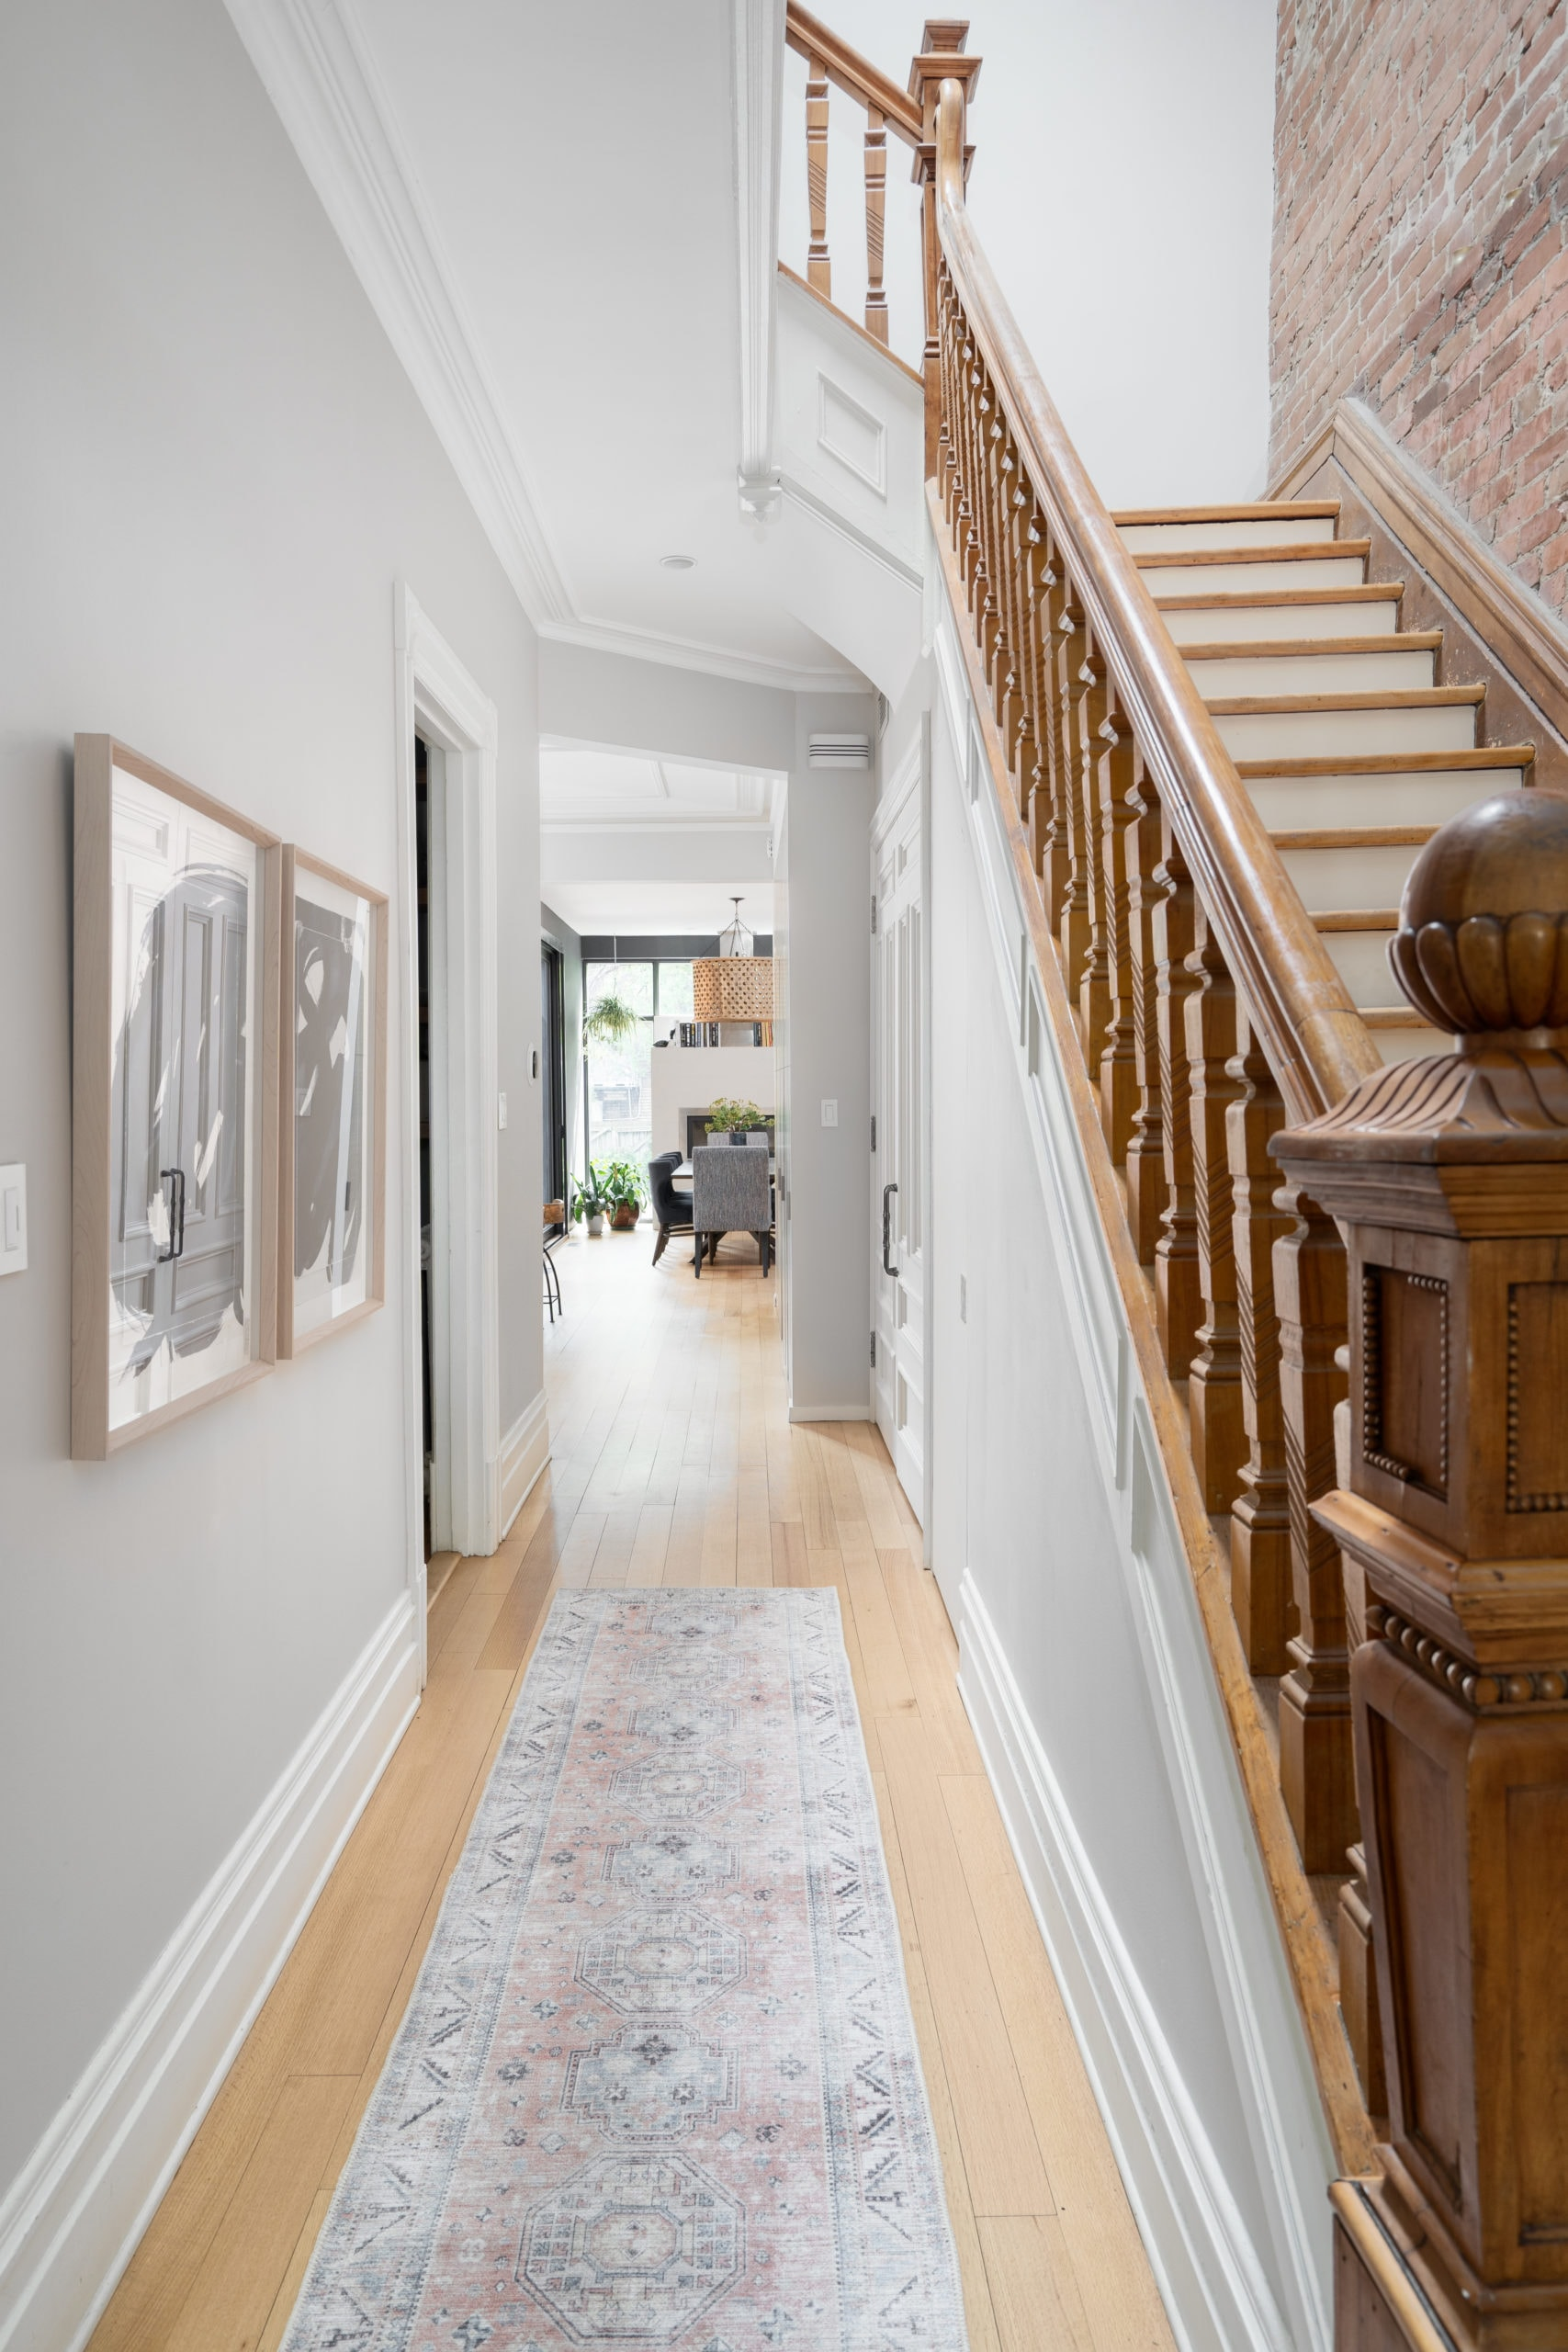 Long hallway with a staircase next to it